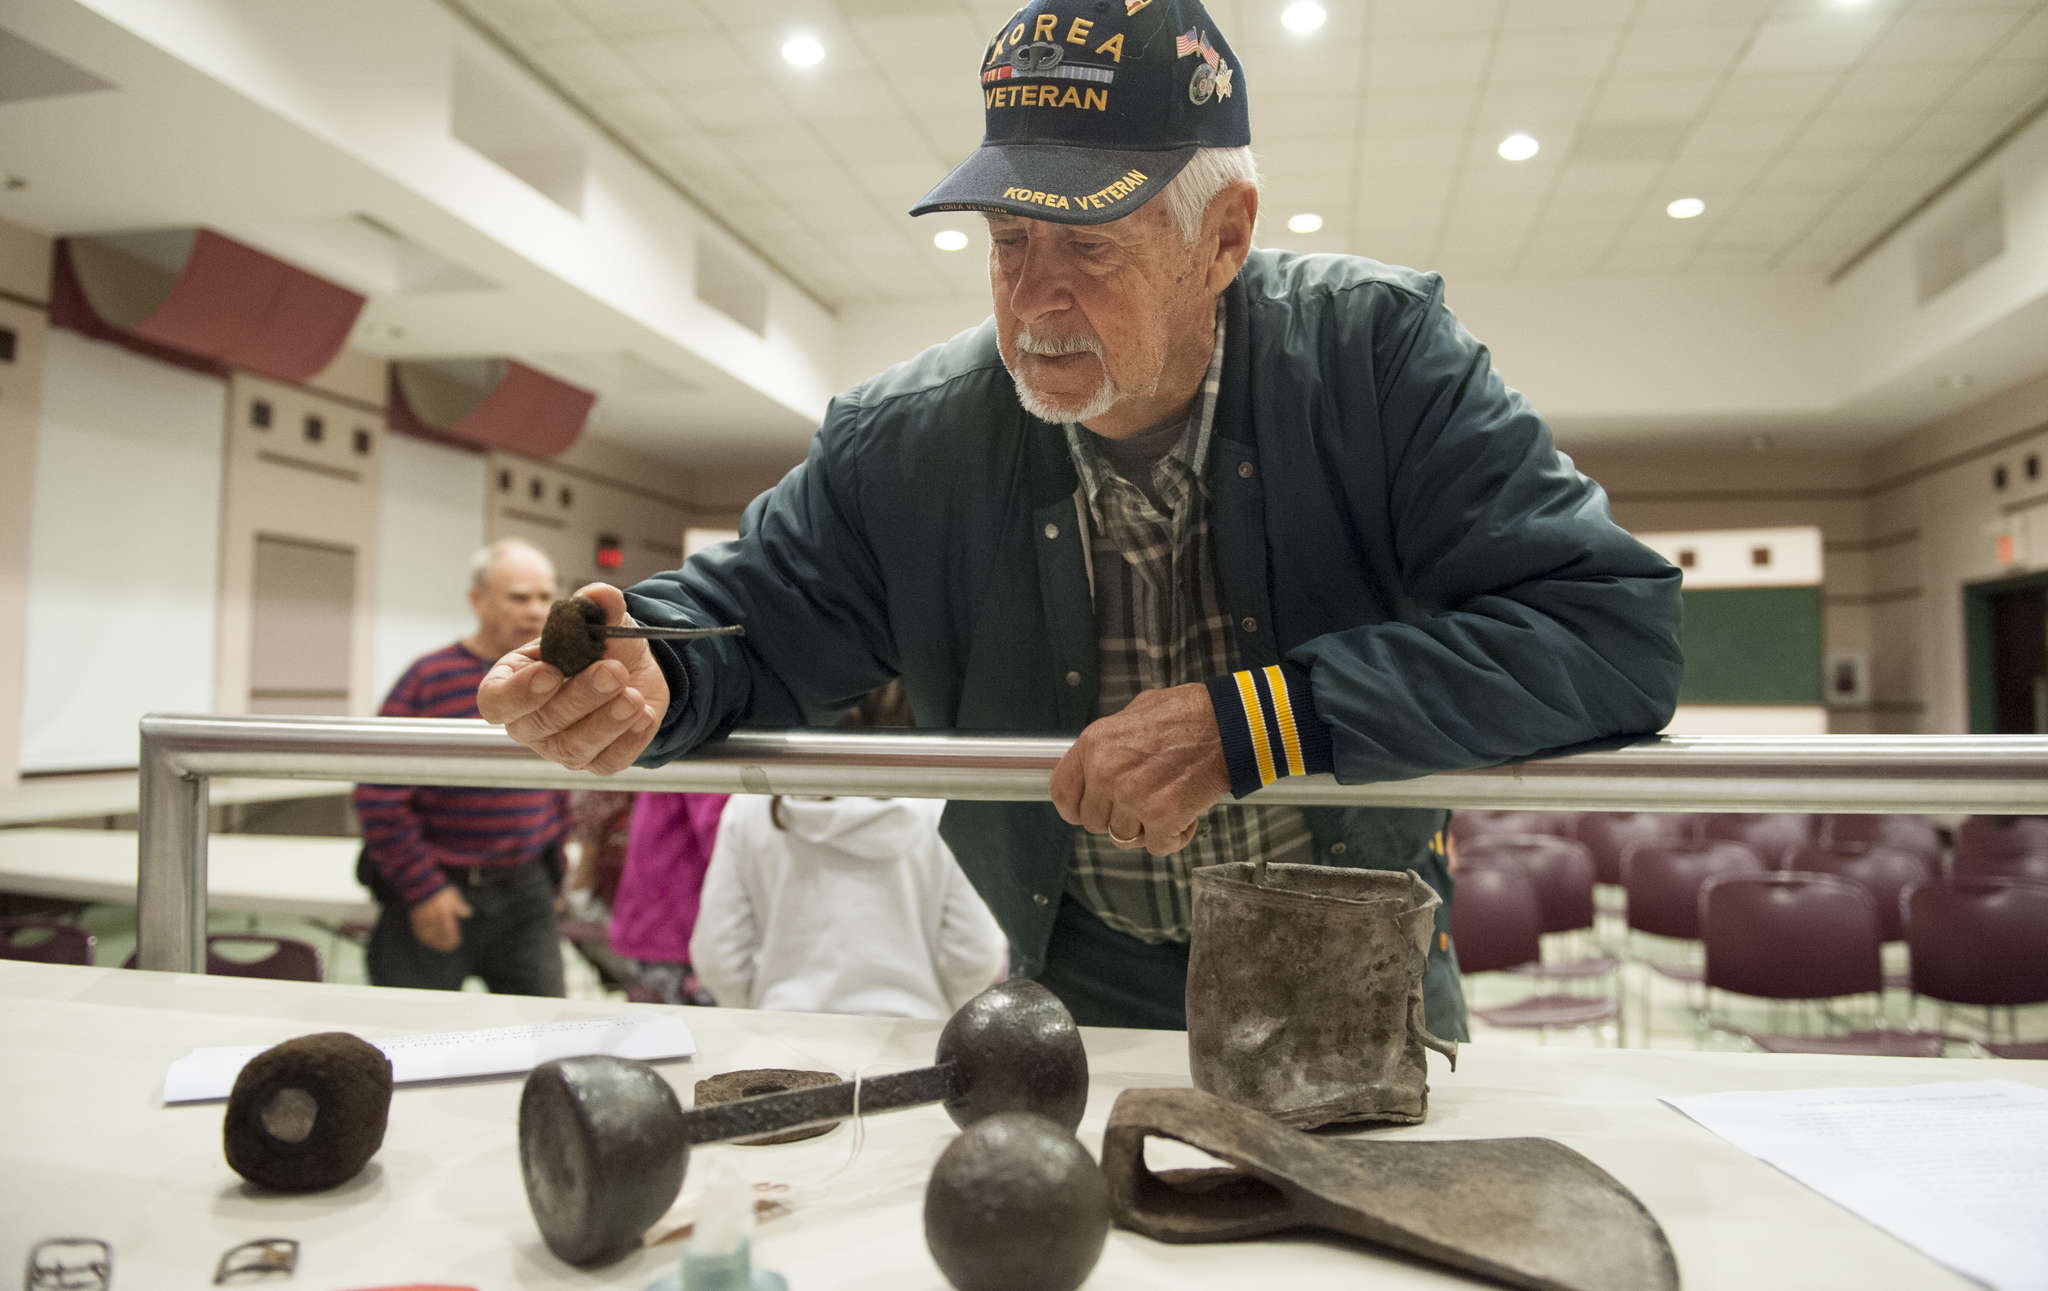 Henry Winzinger, of Jacksonville, N.J., examines a Colonial-era cannon cleaning rod found where I-95 was built in Philadelphia in the 1970s.